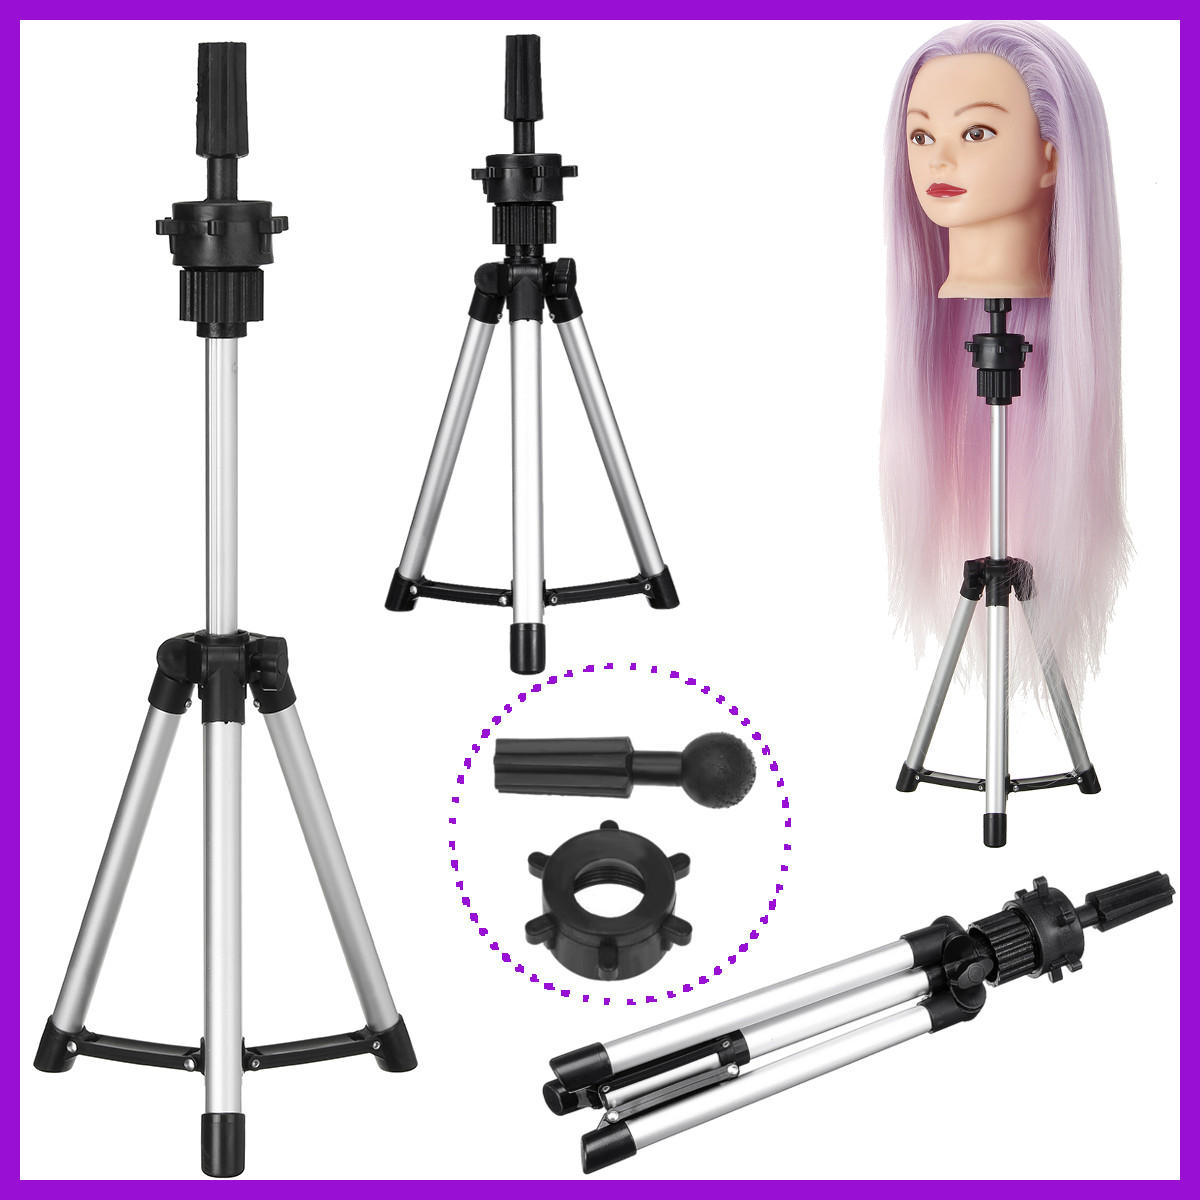 Adjustable Tripod Stand Salon Mannequin Head Wig Stand Hairdressing - 2